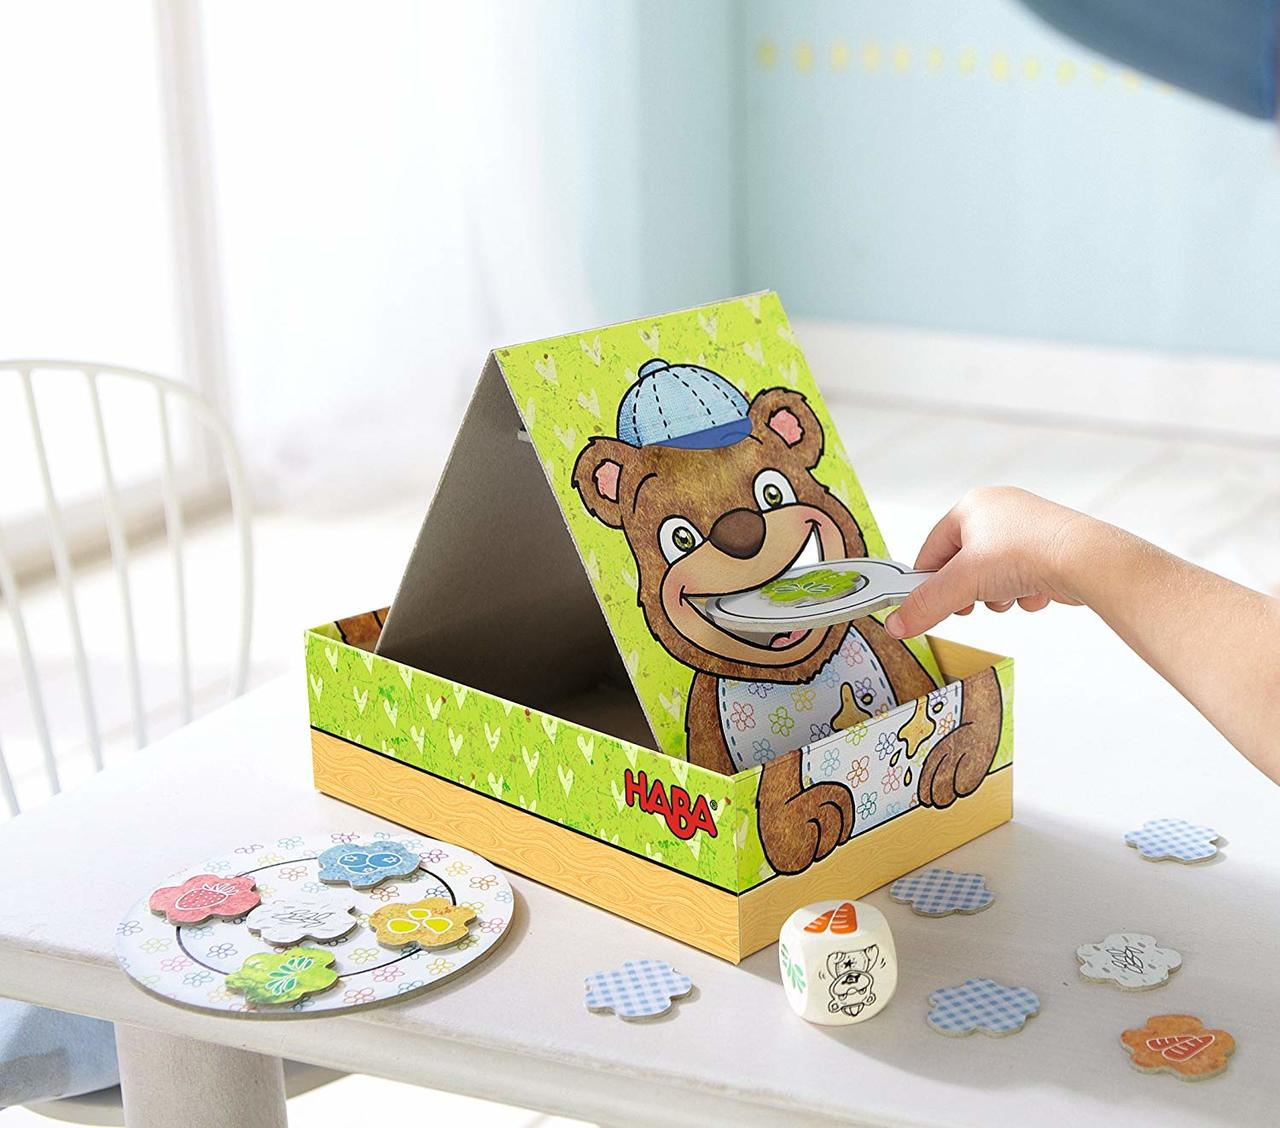 interior shot, a child's hand using a flat spoon to put food into an illustrated bears mouth on the box that is on the table.